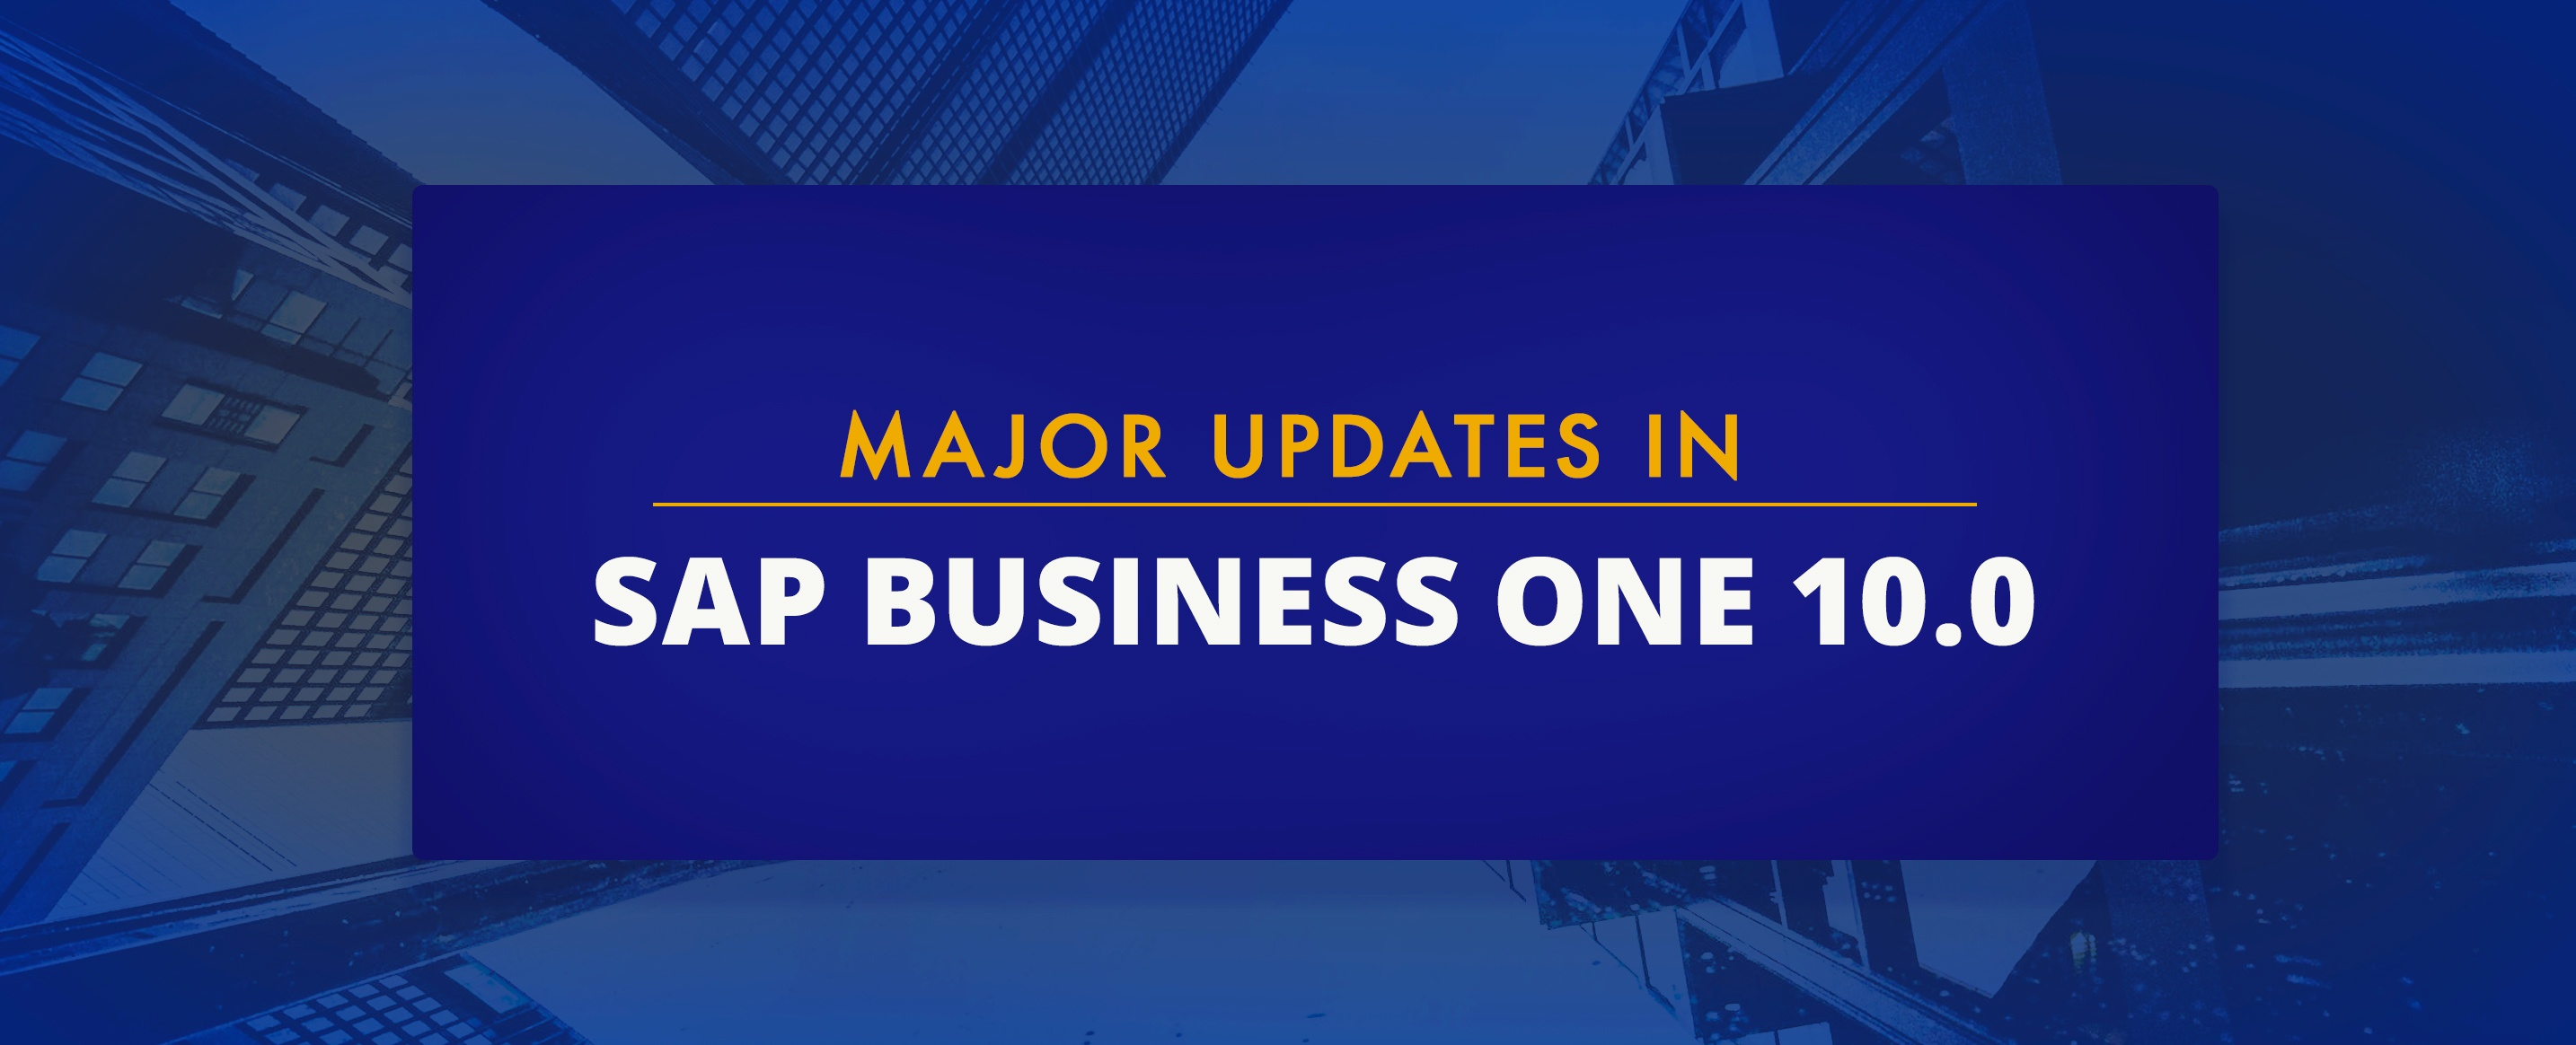 Major-Updates-in-SAP-Business-One-10.0---The-Ultimate-Guide